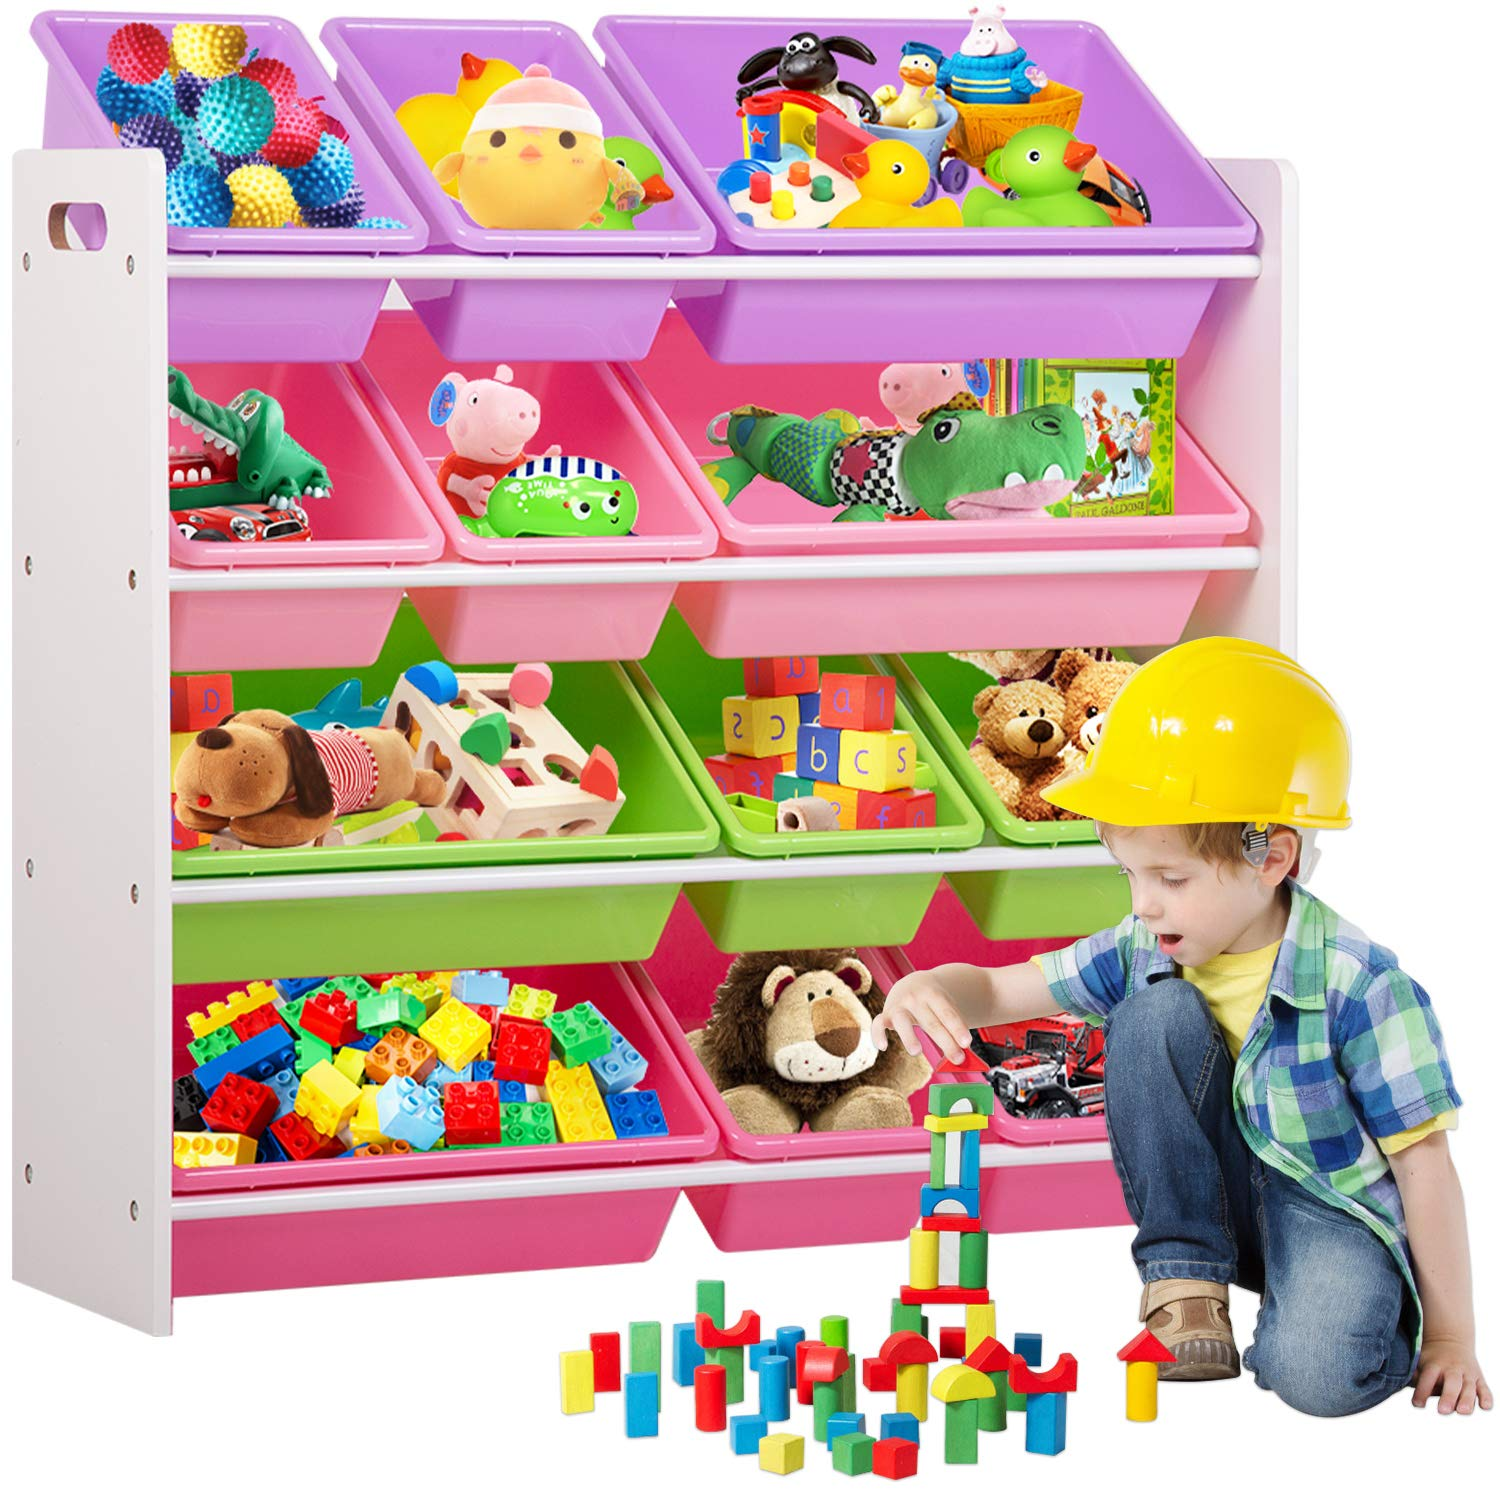 Top 9 Best Toy Storage Organizer (2020 Reviews & Guide) 1